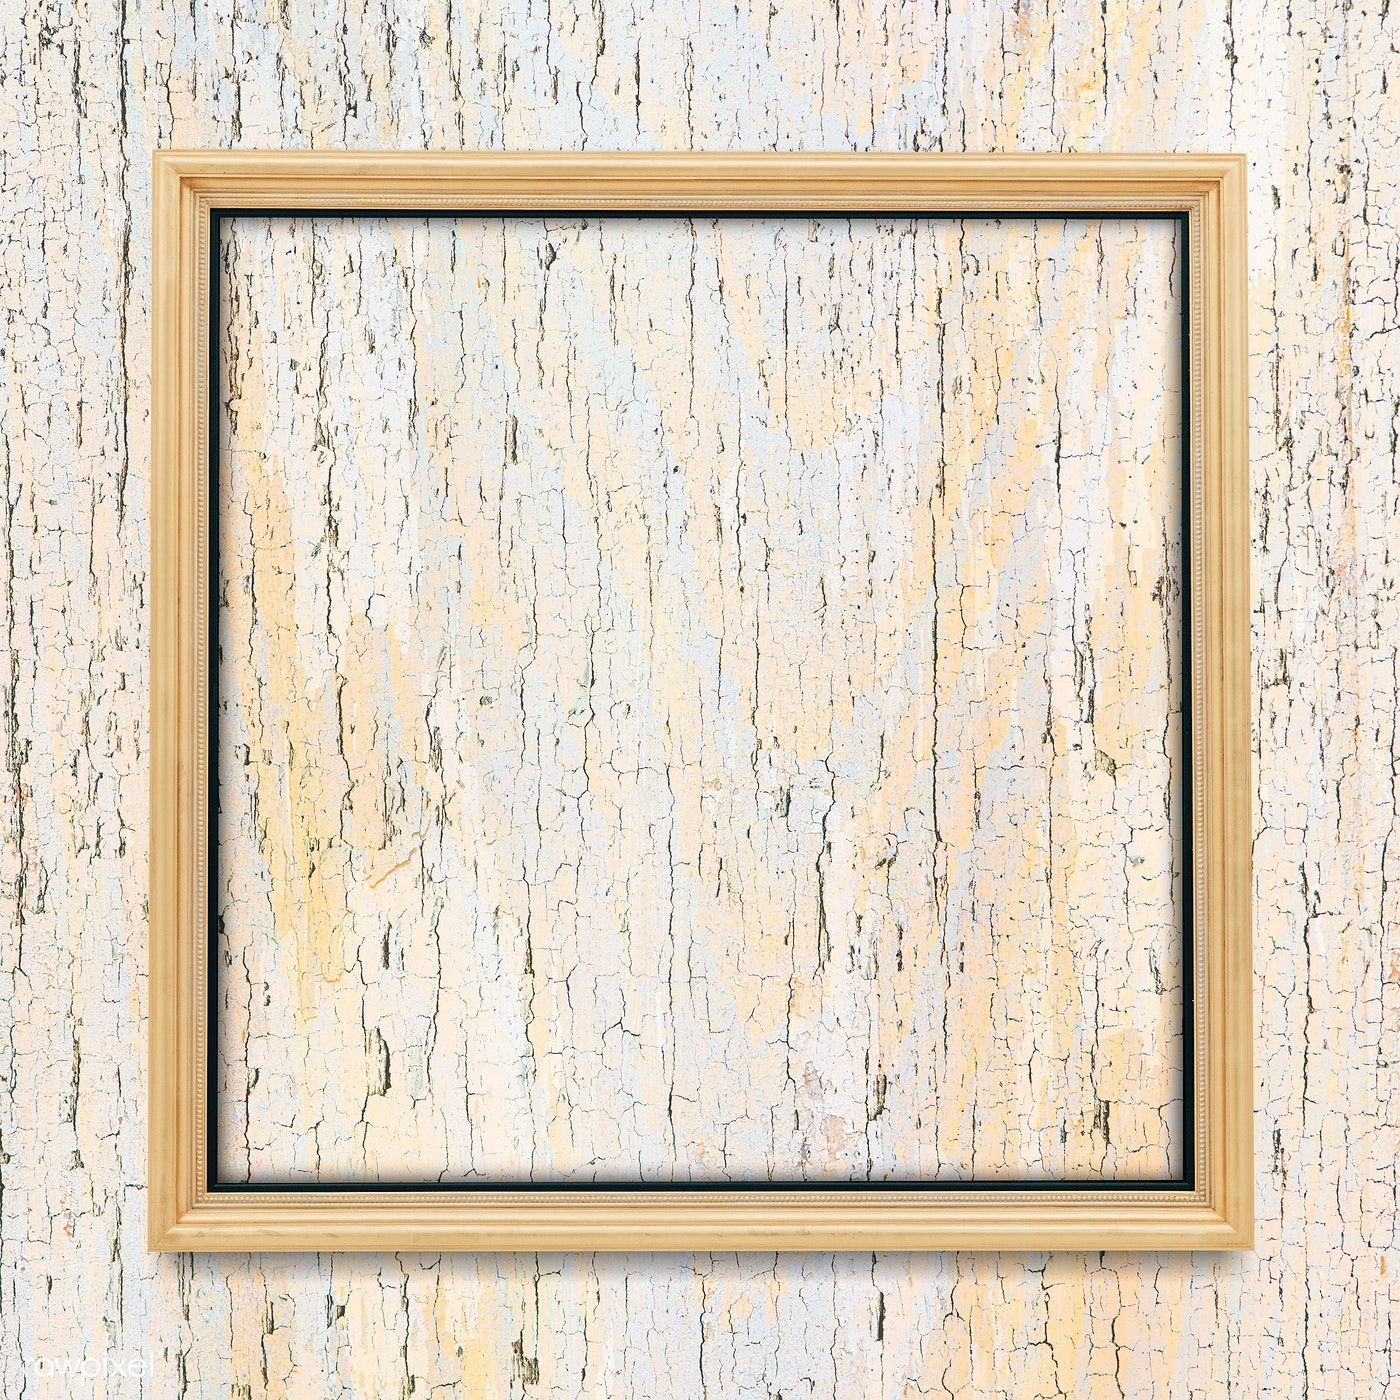 Square Frame On Plain Wooden Texture Background Premium Image By Rawpixel Com Manotang ในป 2020